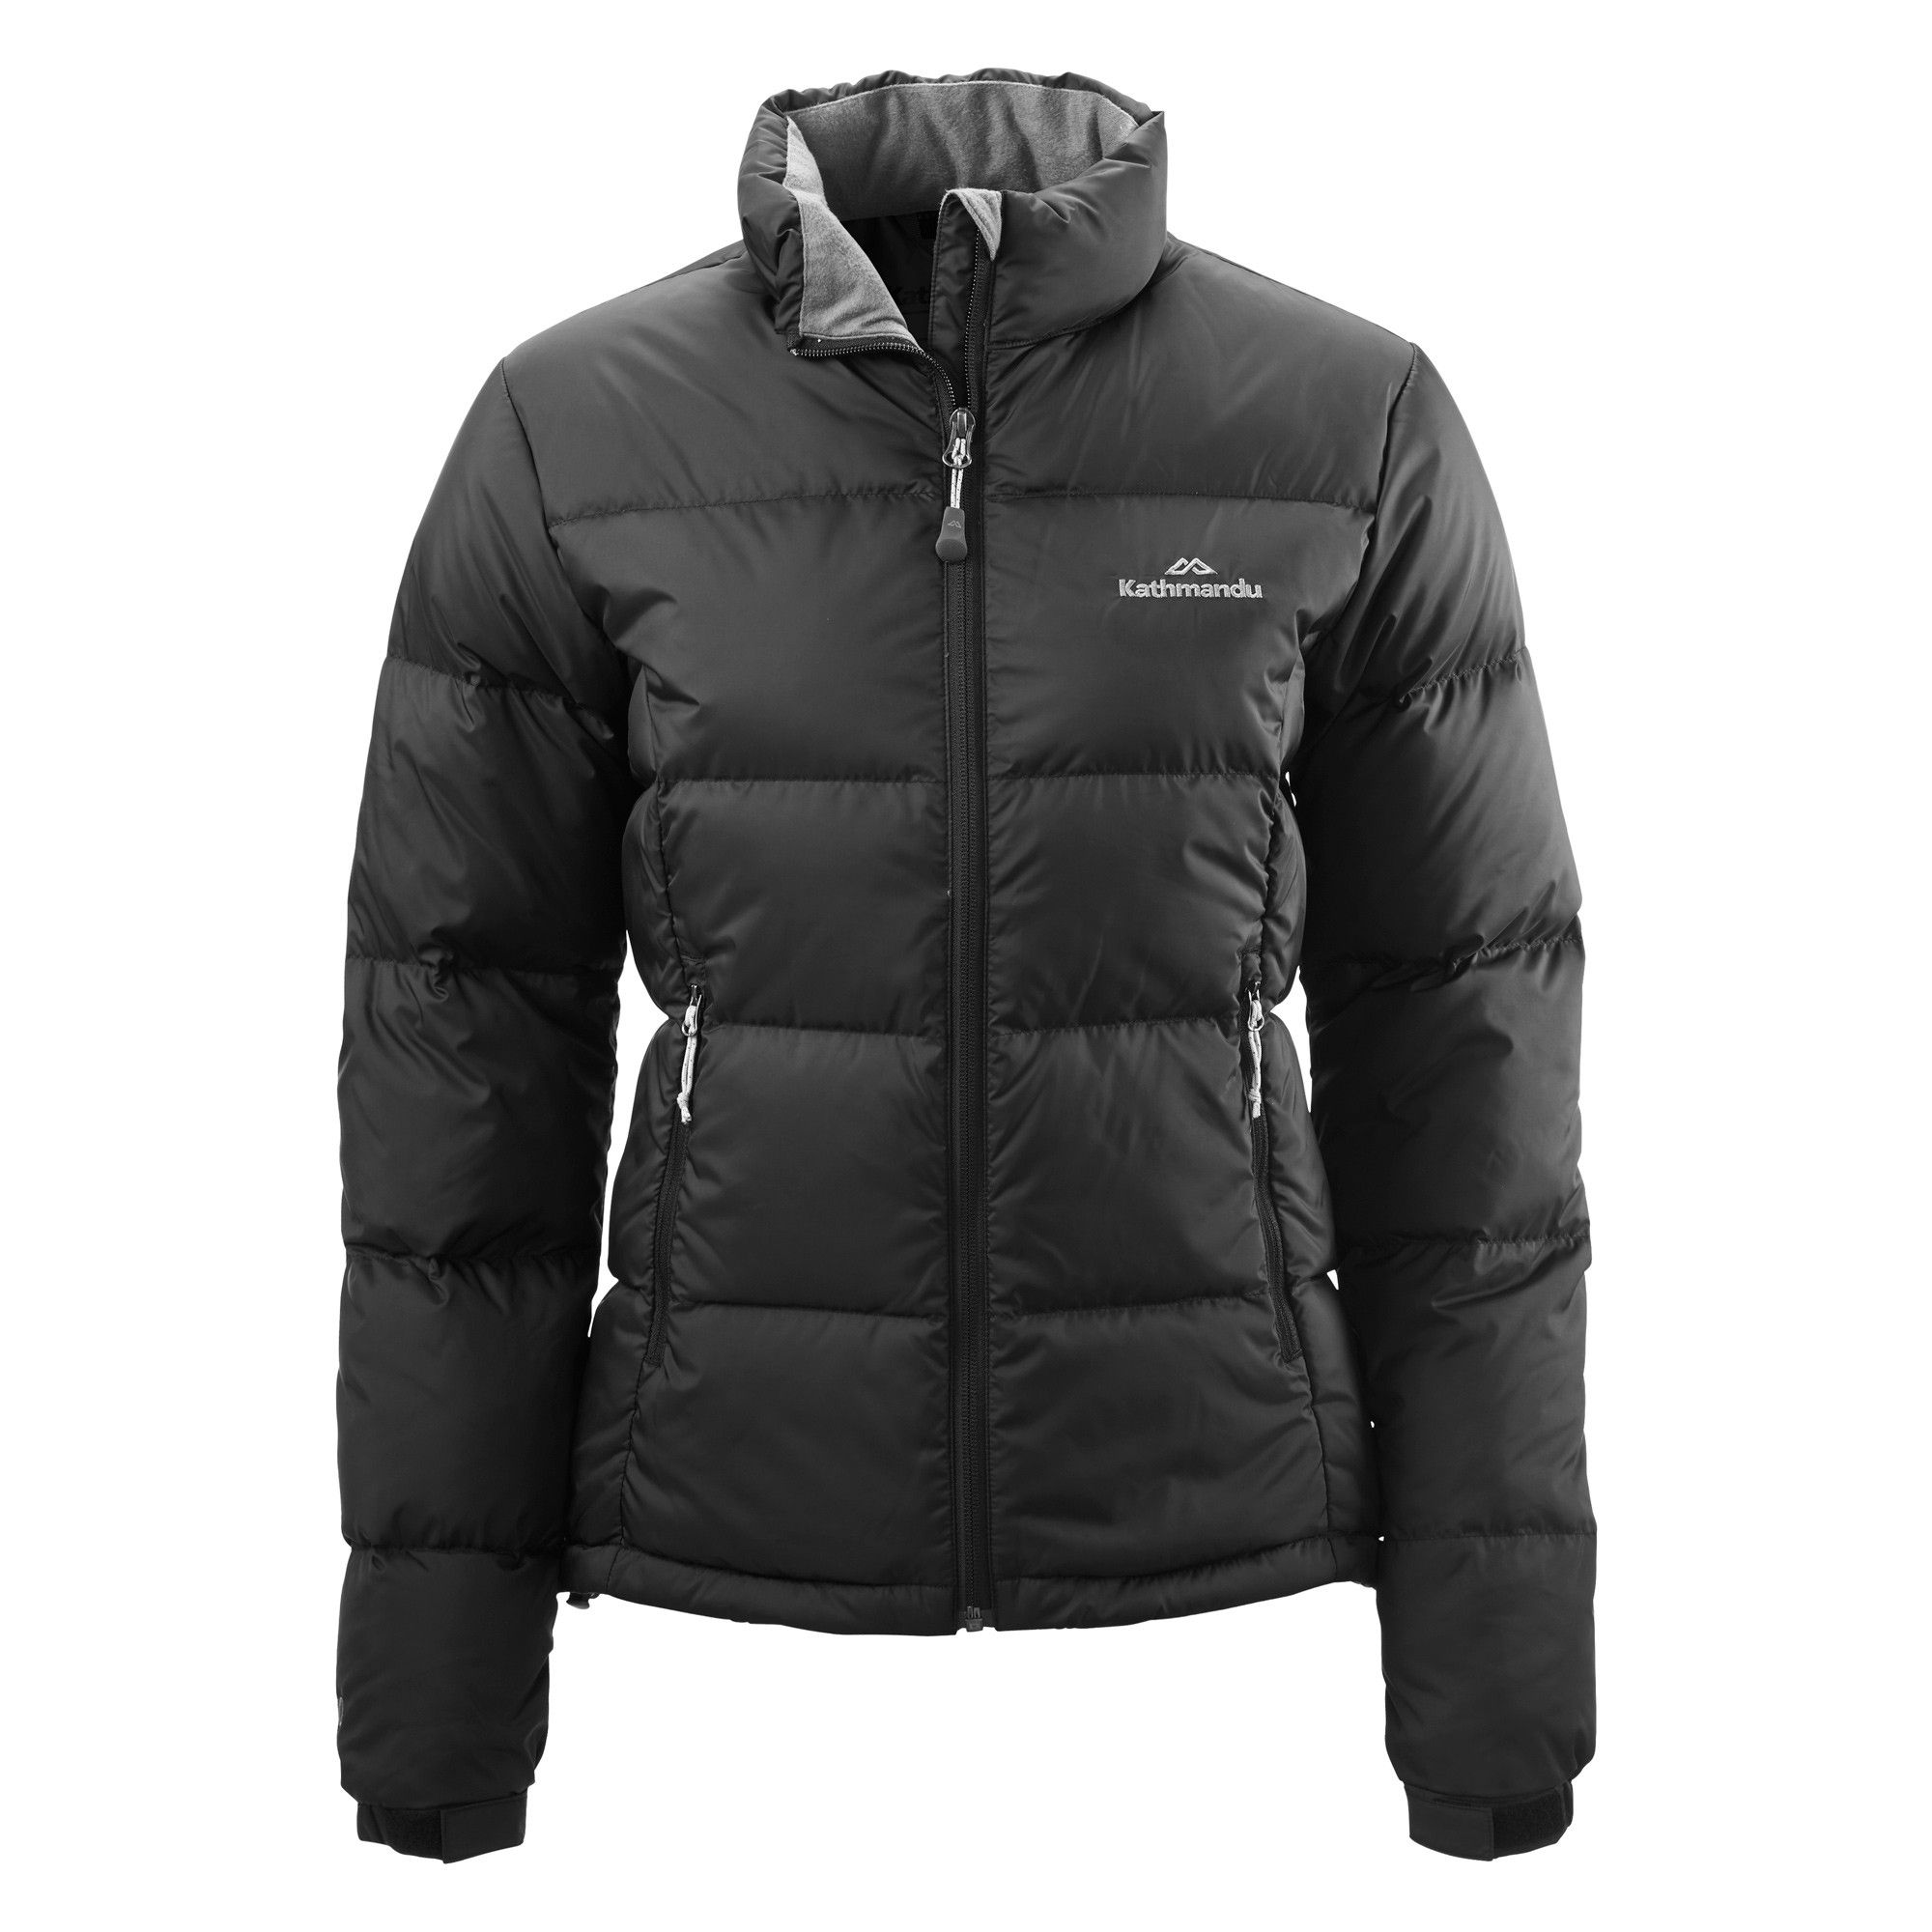 125efa7242f Buy Epiq Women's Duck Down Jacket - Black online at Kathmandu ...